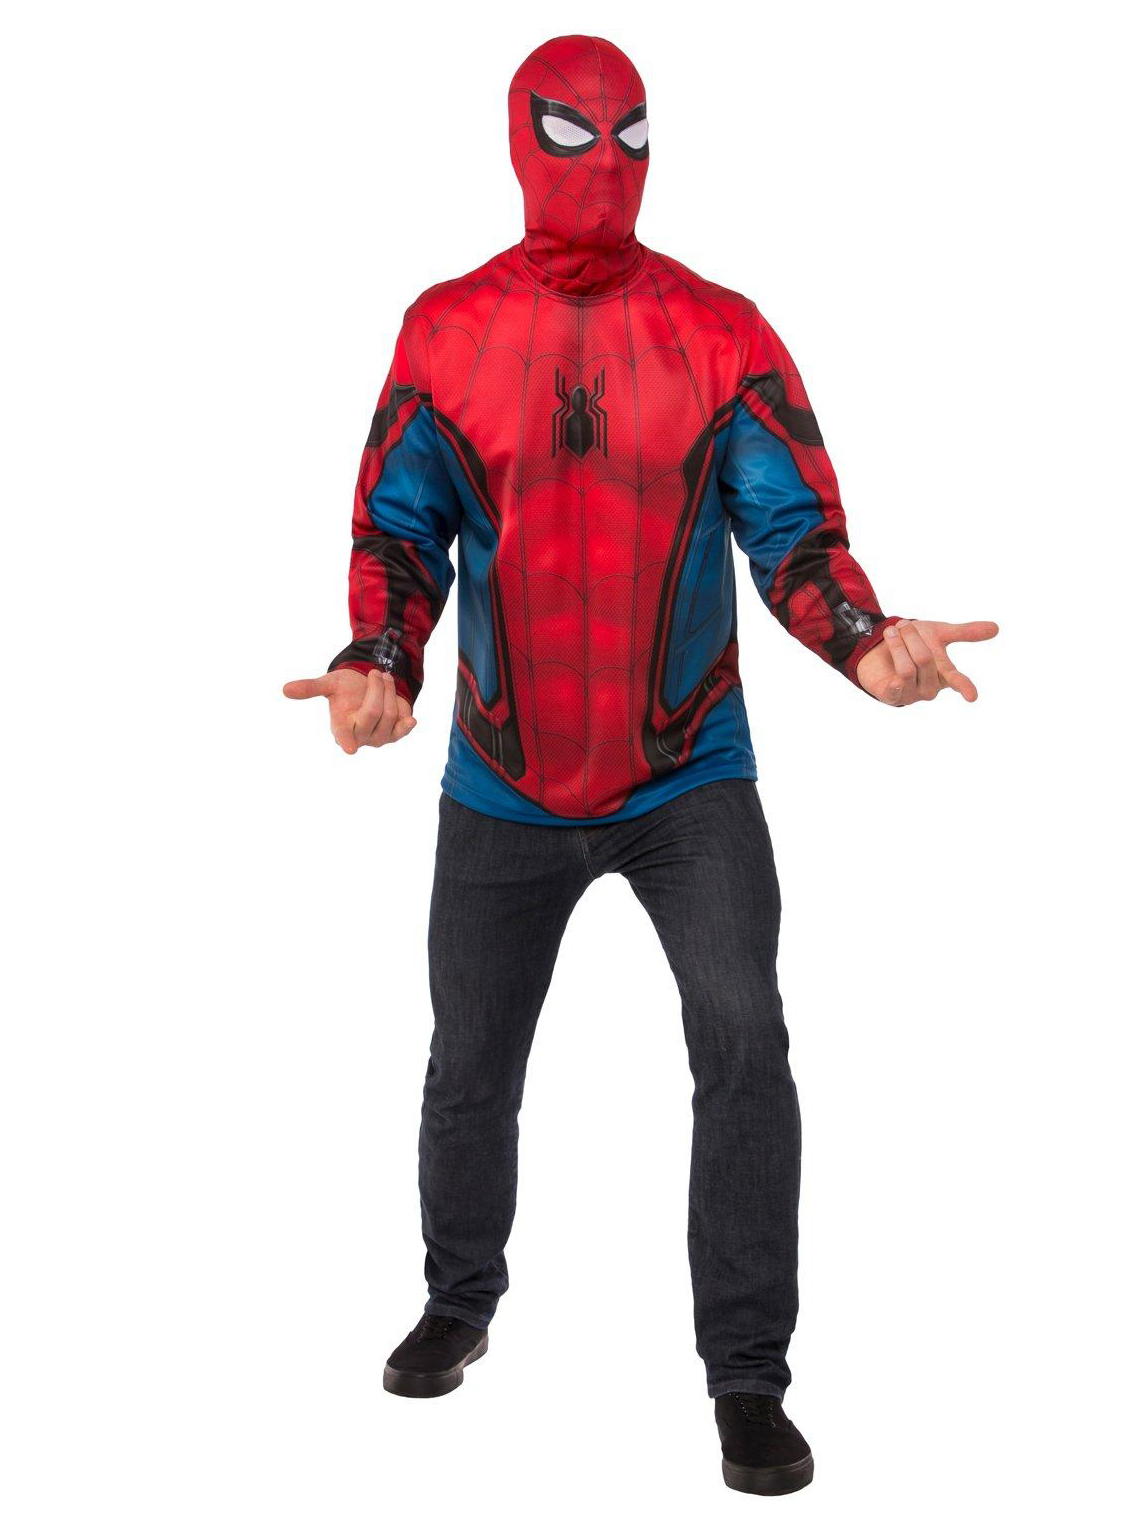 Spider-Man Homecoming - Spider-Man Adult Costume Top R820507-STD